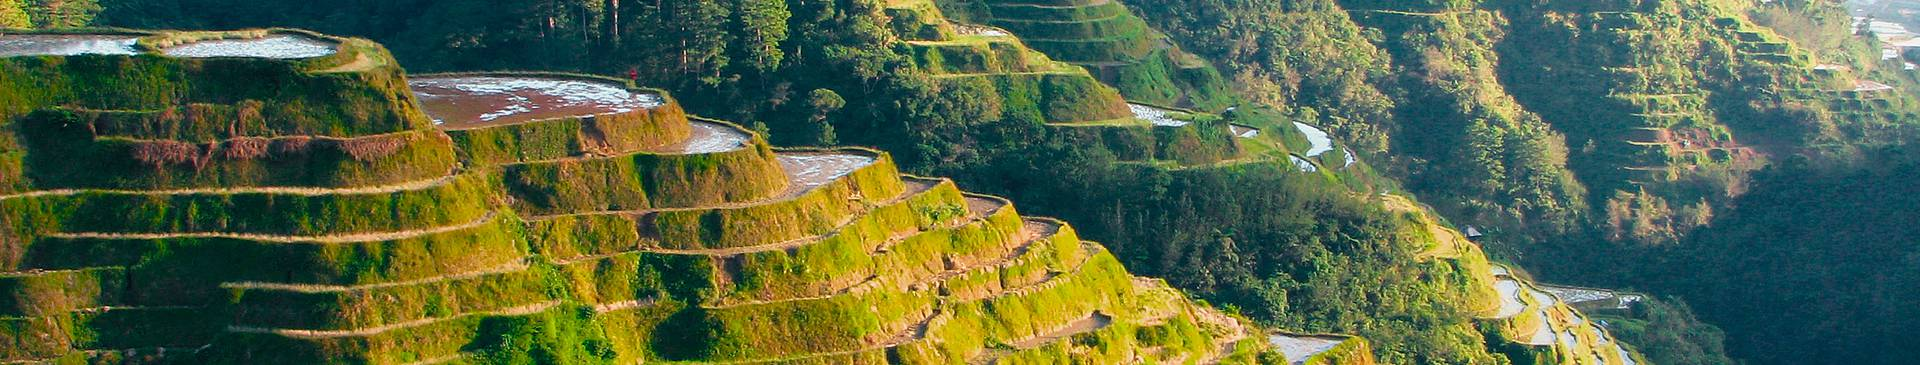 Nature trips in the Philippines